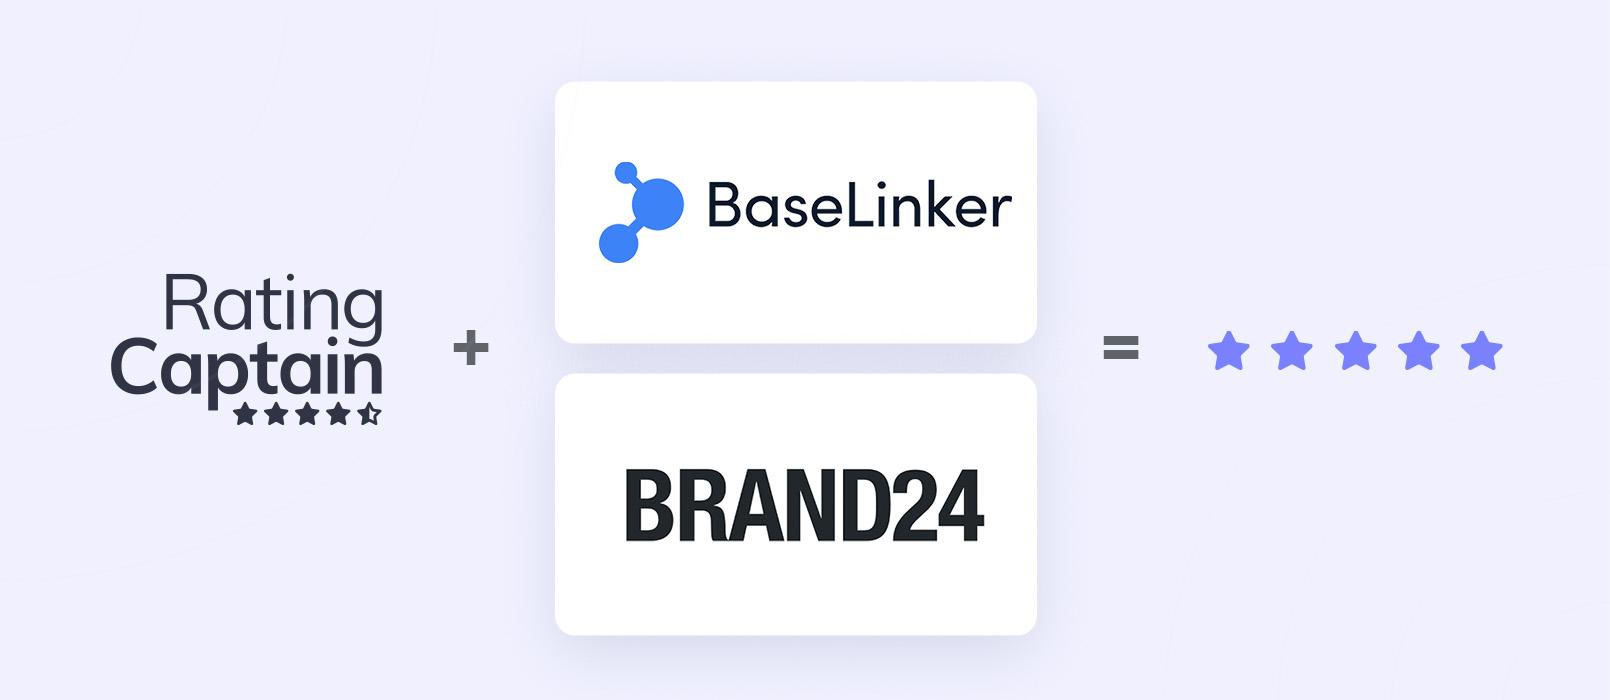 Partners of this promotion are: Brand24 and BaseLinker